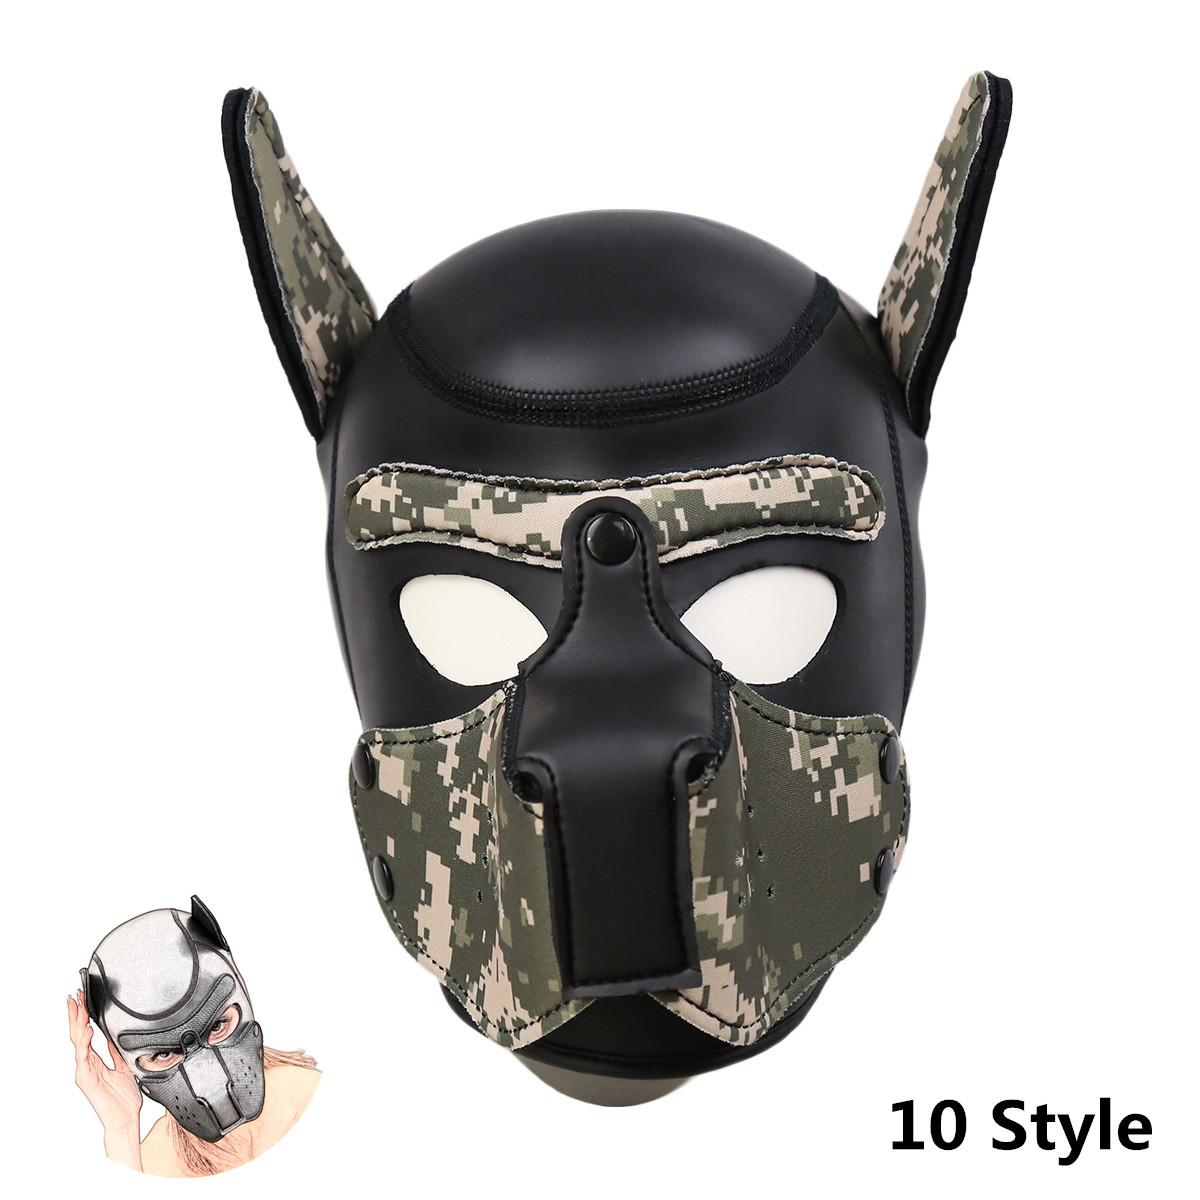 GENUINE LEATHER FACE MUZZLE HOOD MASK WITH BLINDFOLD HOOD-2